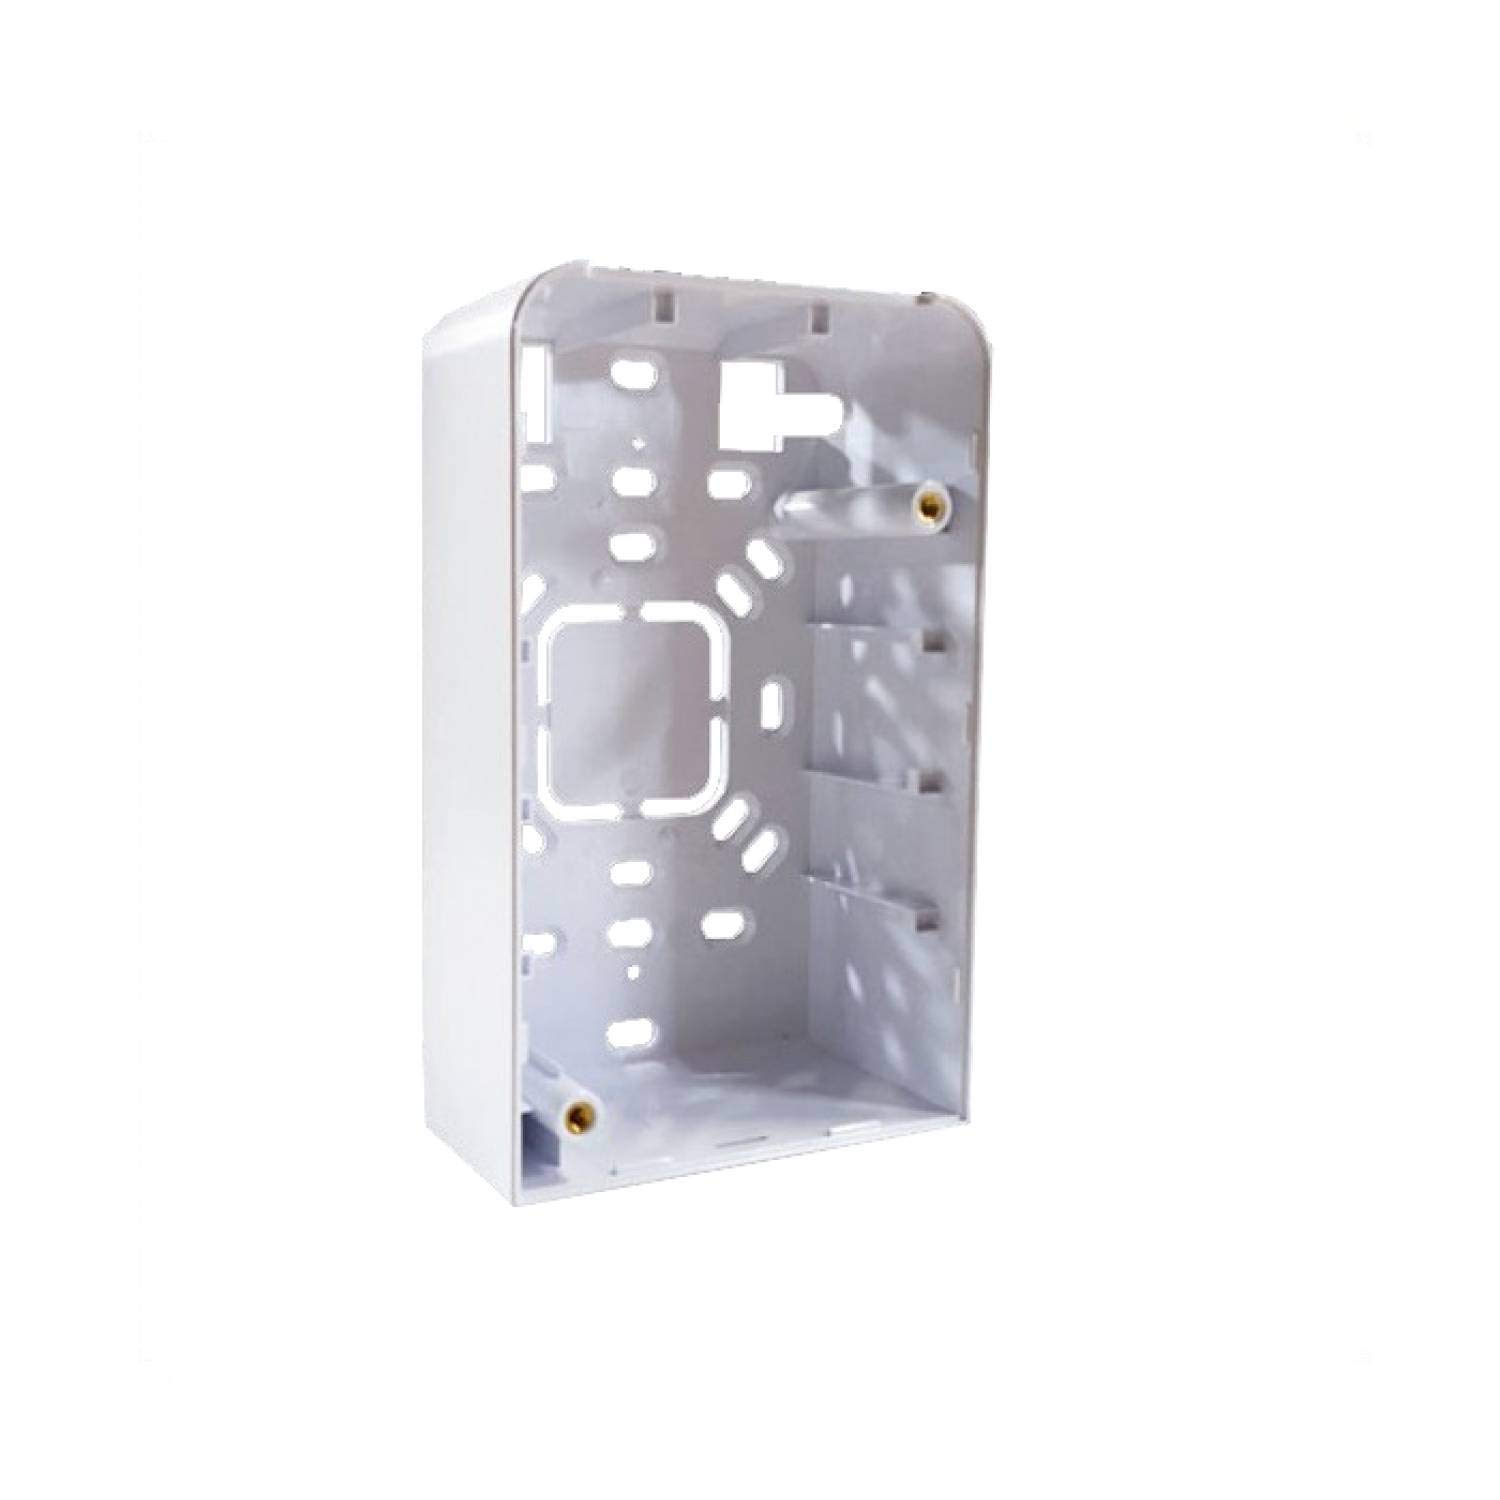 Ubiquiti Networks Inwall Junction Box for UAP-IW-HD, UAP-IW-HD-JB-25 (for UAP-IW-HD 25-Pack)